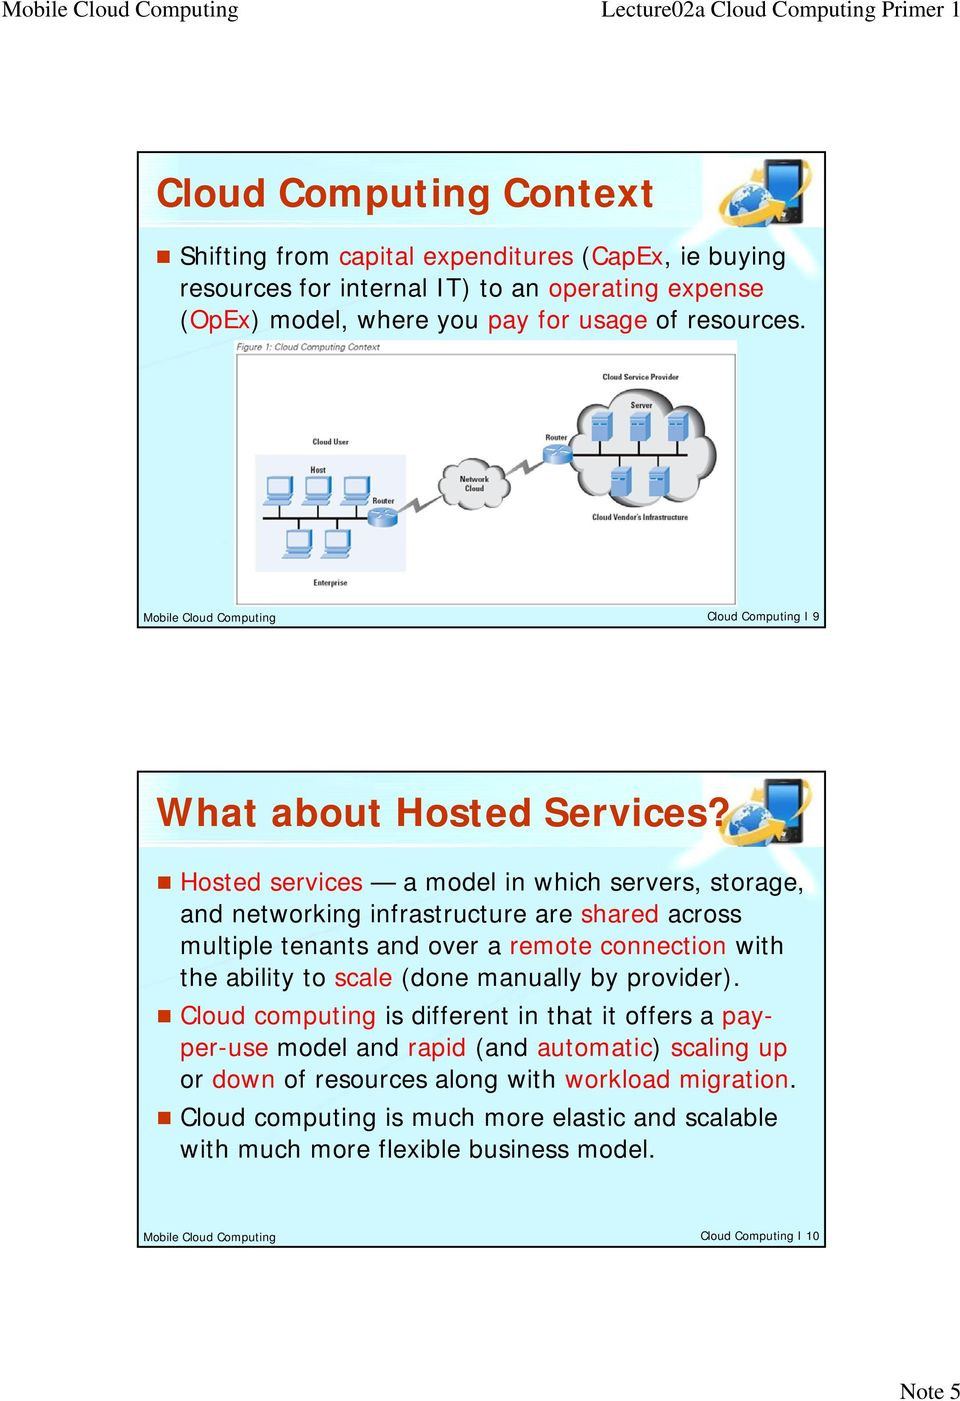 Hosted services a model in which servers, storage, and networking infrastructure are shared across multiple tenants and over a remote connection with the ability to scale (done manually